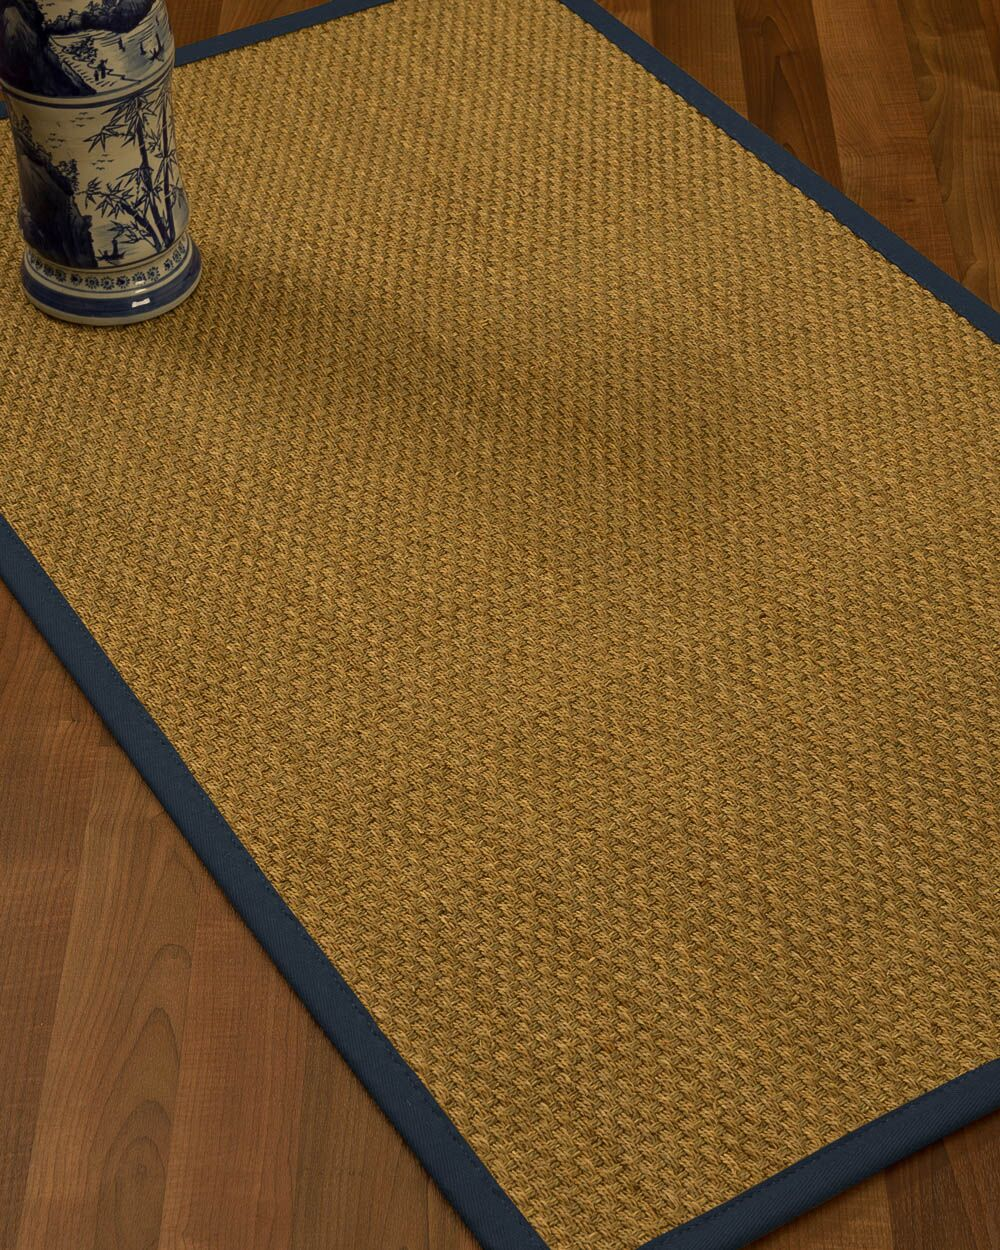 Rosabel Border Hand-Woven Beige/Marine Area Rug Rug Pad Included: No, Rug Size: Rectangle 3' x 5'